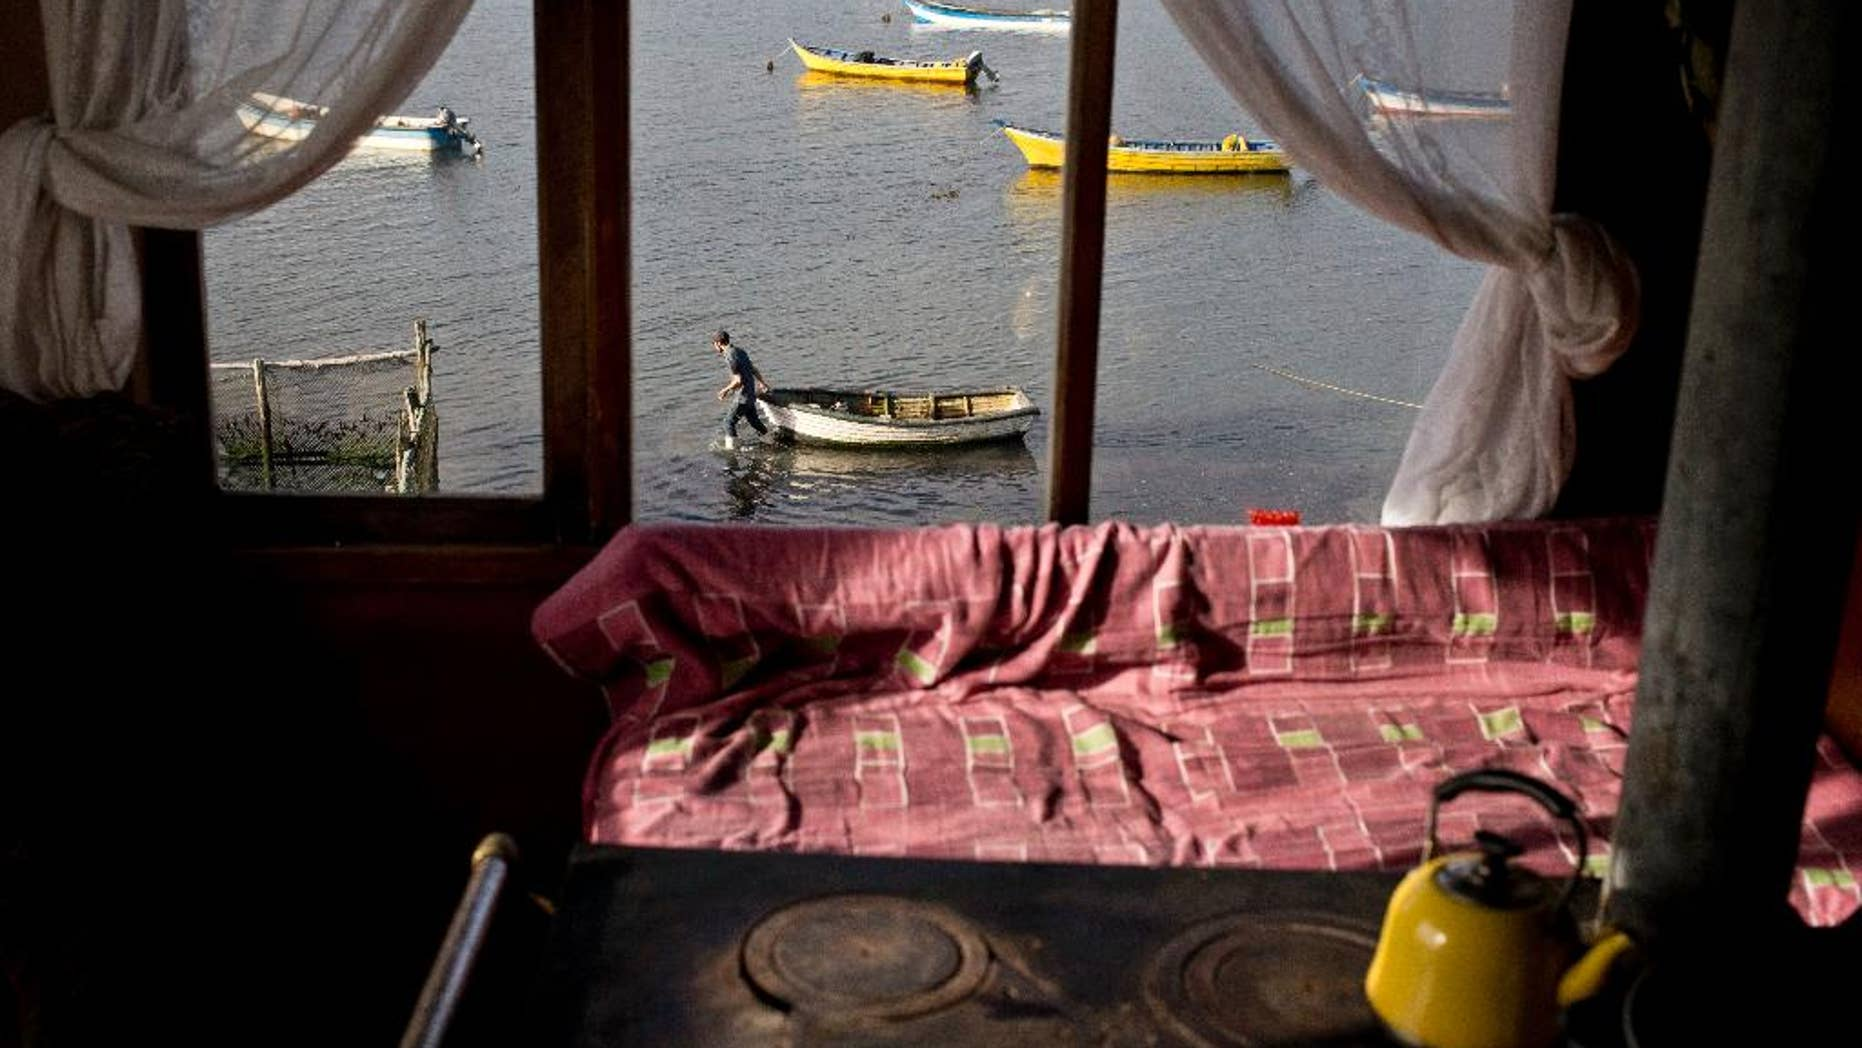 """In this May 10, 2016, Marco, the 19-year-old son of fisherwoman Marisol Millaquien prepares to take out a boat on an expedition, in hopes of providing food for the dinner table, in Quetalmahue, on Chile's Chiloe Island, during the country's worst ever """"red tide"""" environmental disaster. The view from Millaquien's stilt home is desolate: dozens of abandoned ghostly boats, dead birds and shellfish. """"I'm 46. I've seen red tide before, but never like this,"""" she said. (AP Photo/Esteban Felix)"""